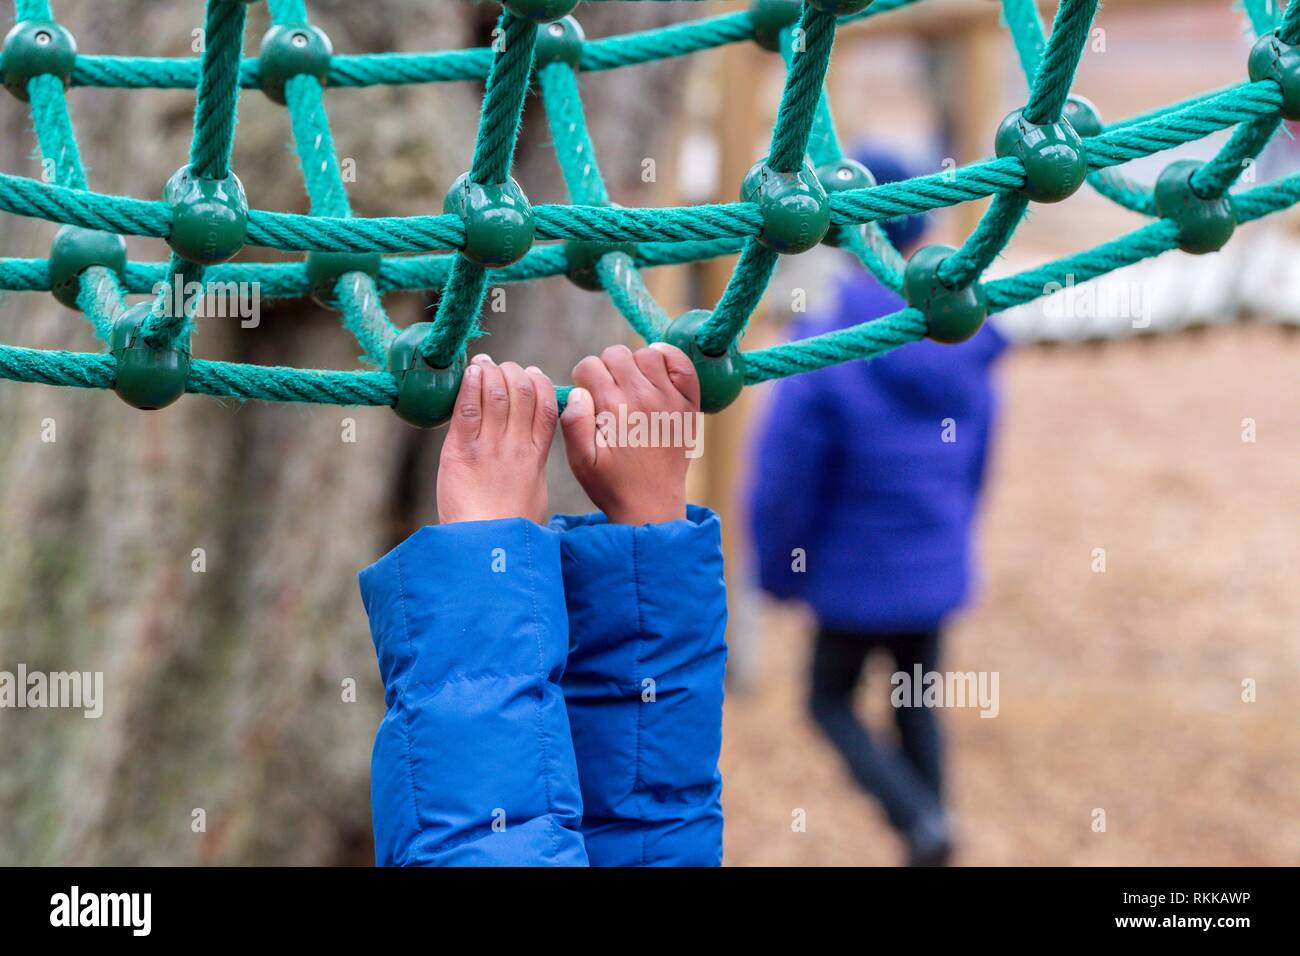 A young child hanging onto rope climbing equipment in Battersea Park, London. - Stock Image